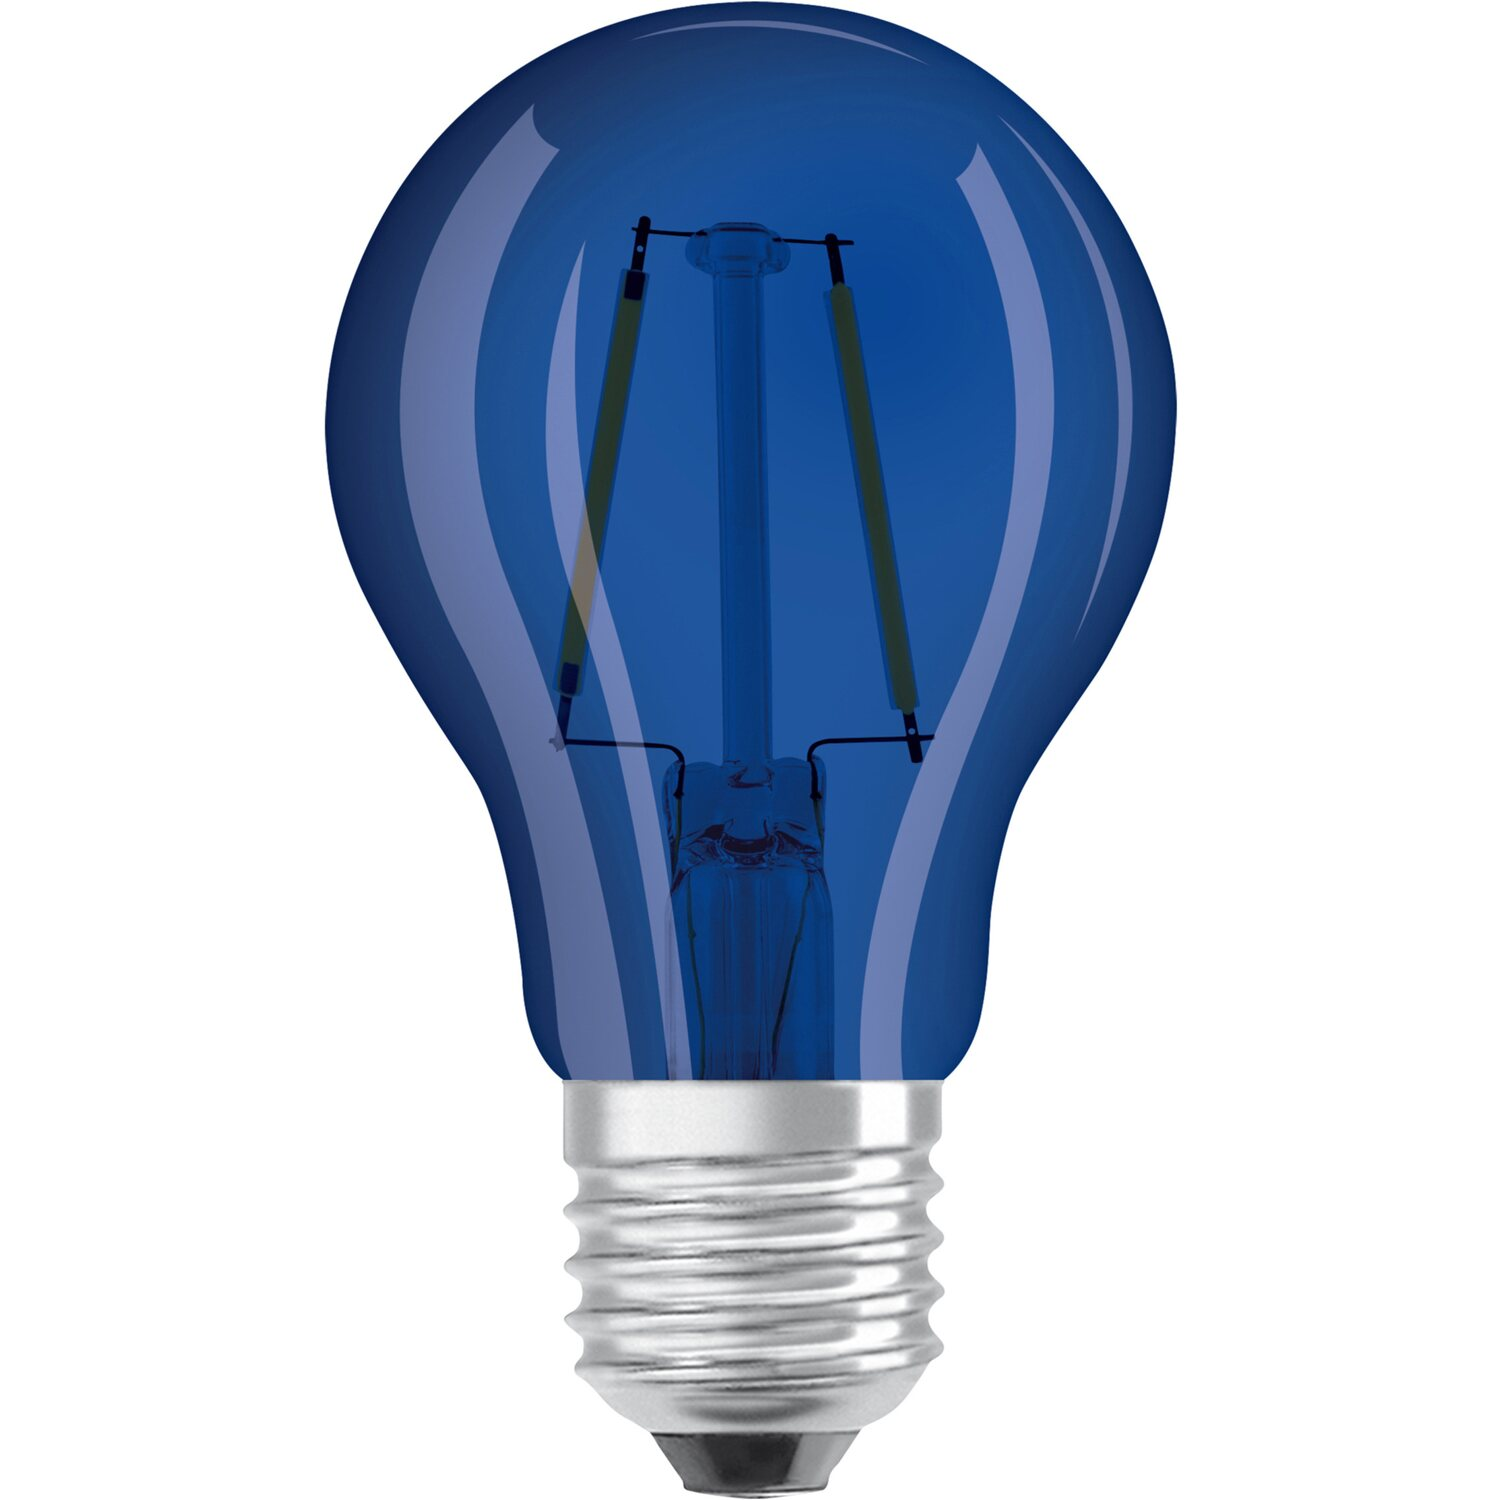 osram lampadina led decor goccia e27 blu acquista da obi